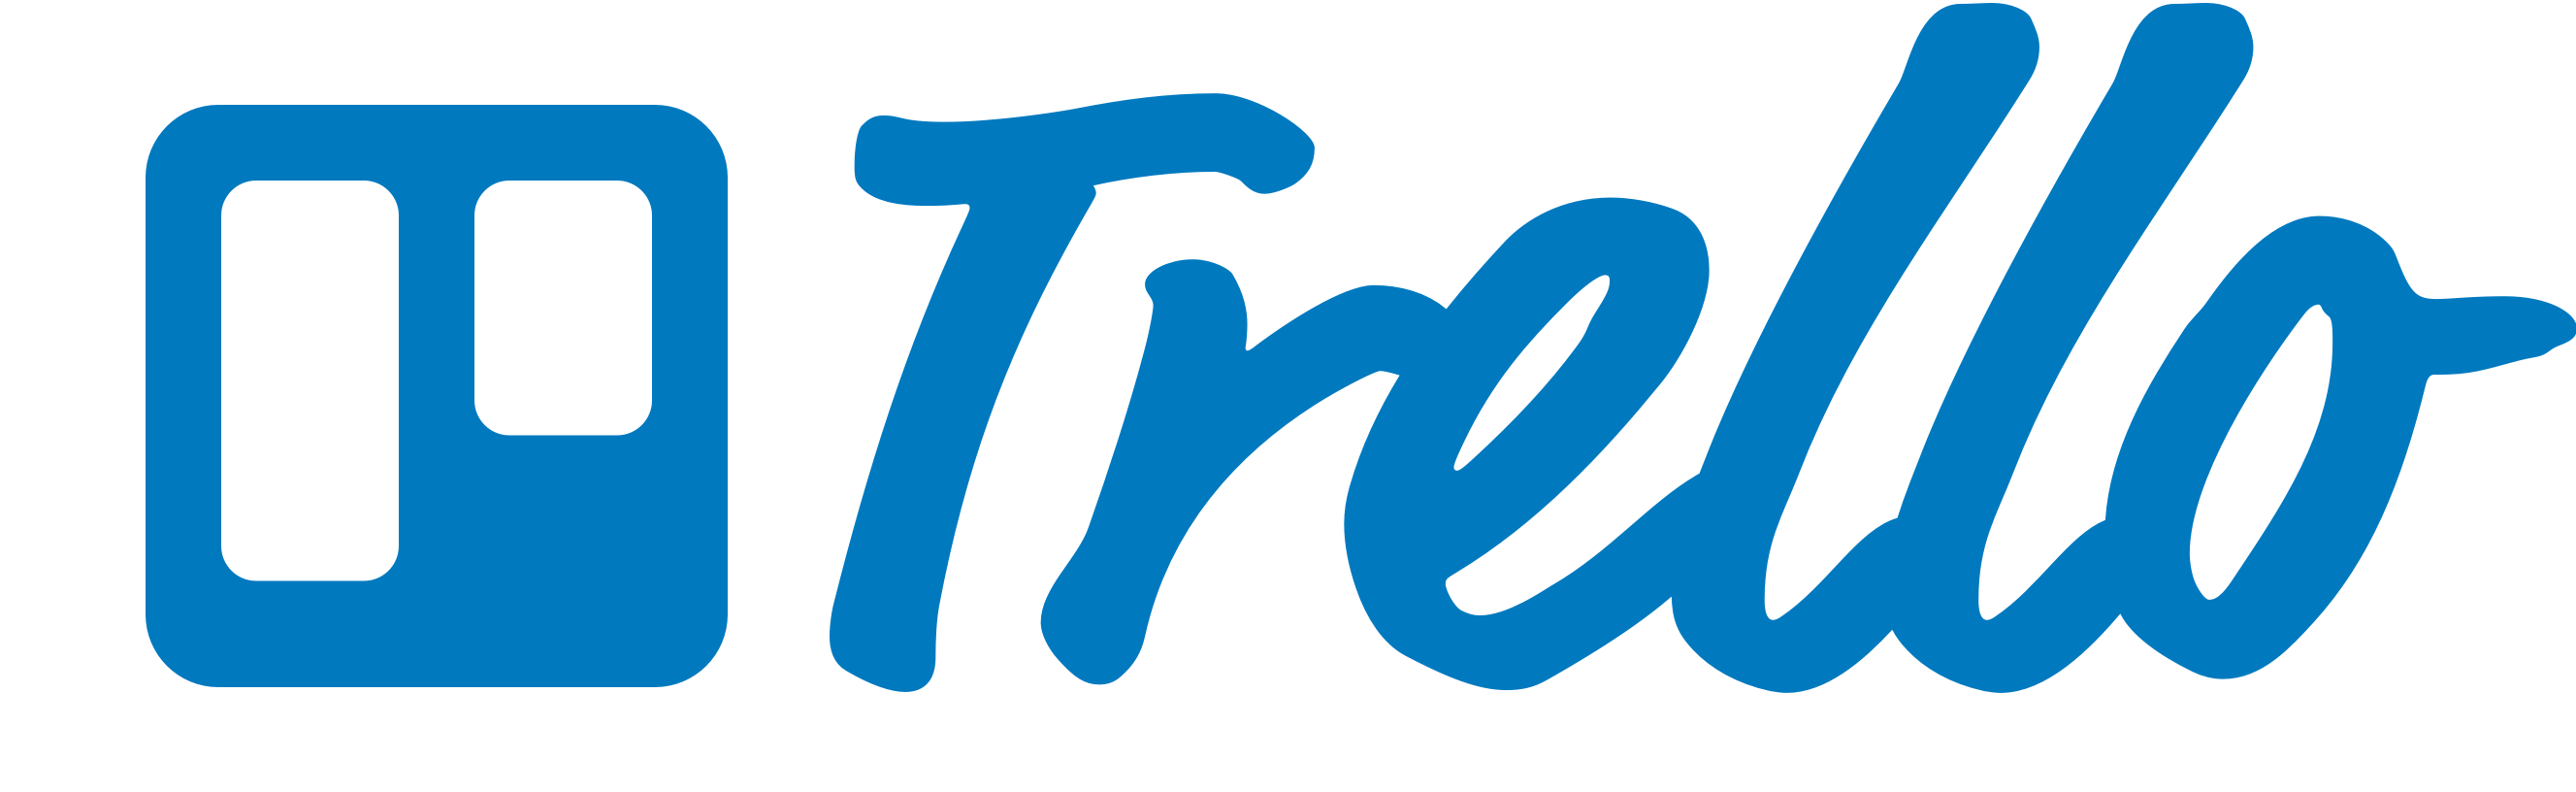 My favorite tools: Trello